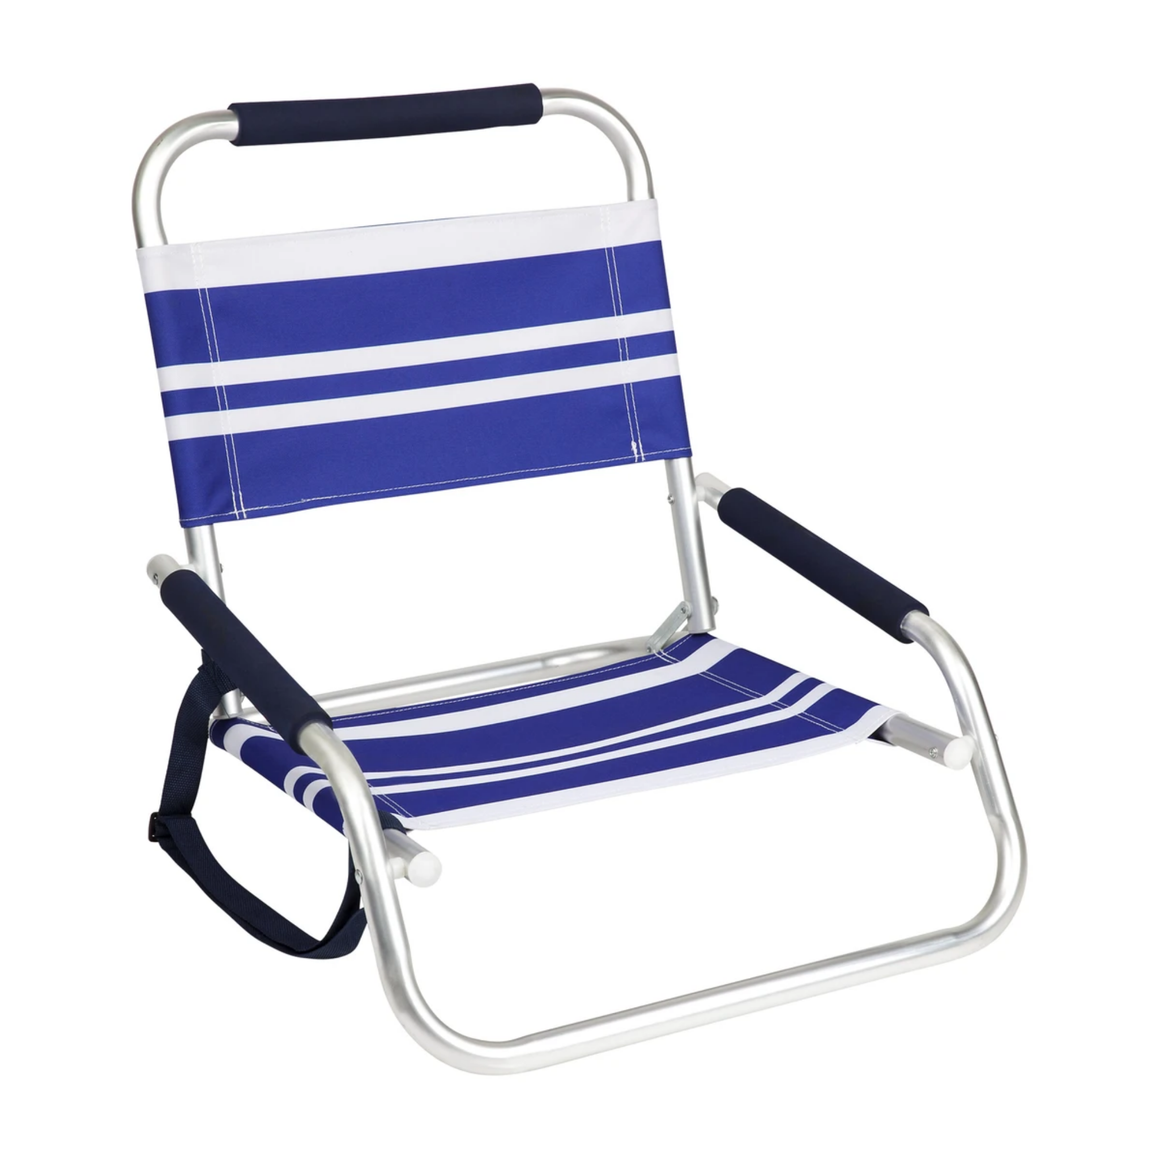 BEACH SEAT / DOLCE CLASSIC - SUNNYLIFE